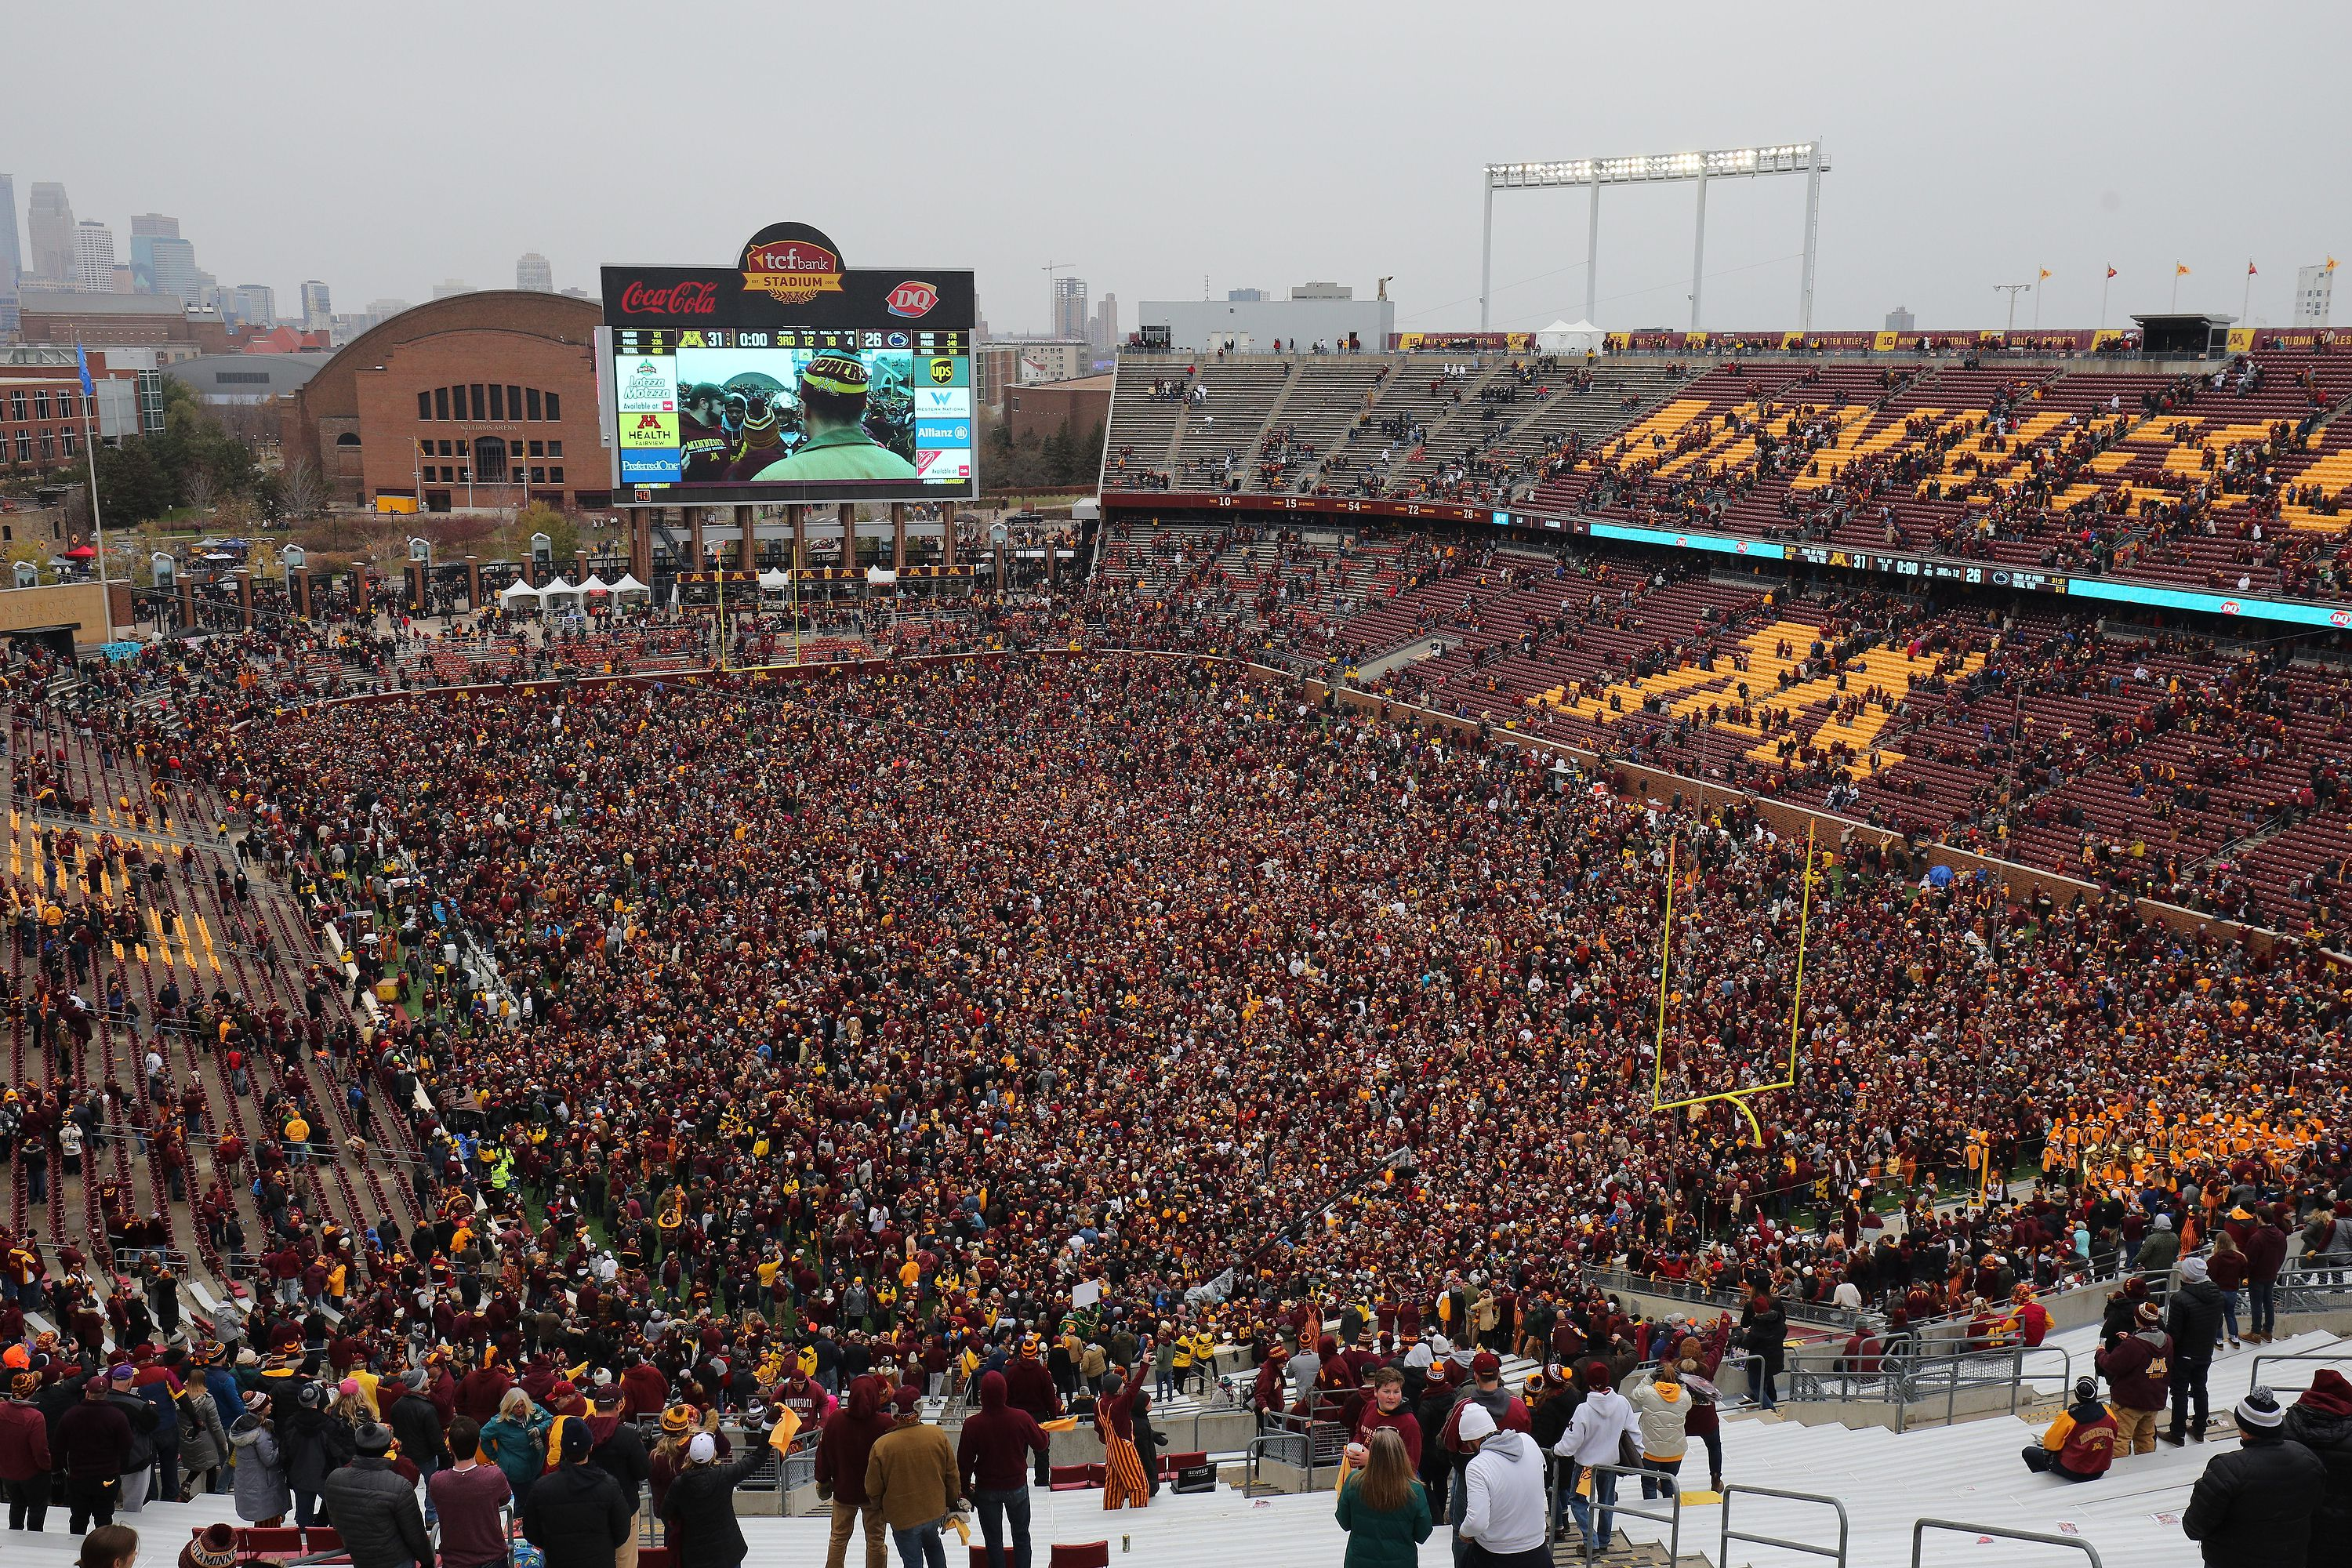 Minnesota fans on the field